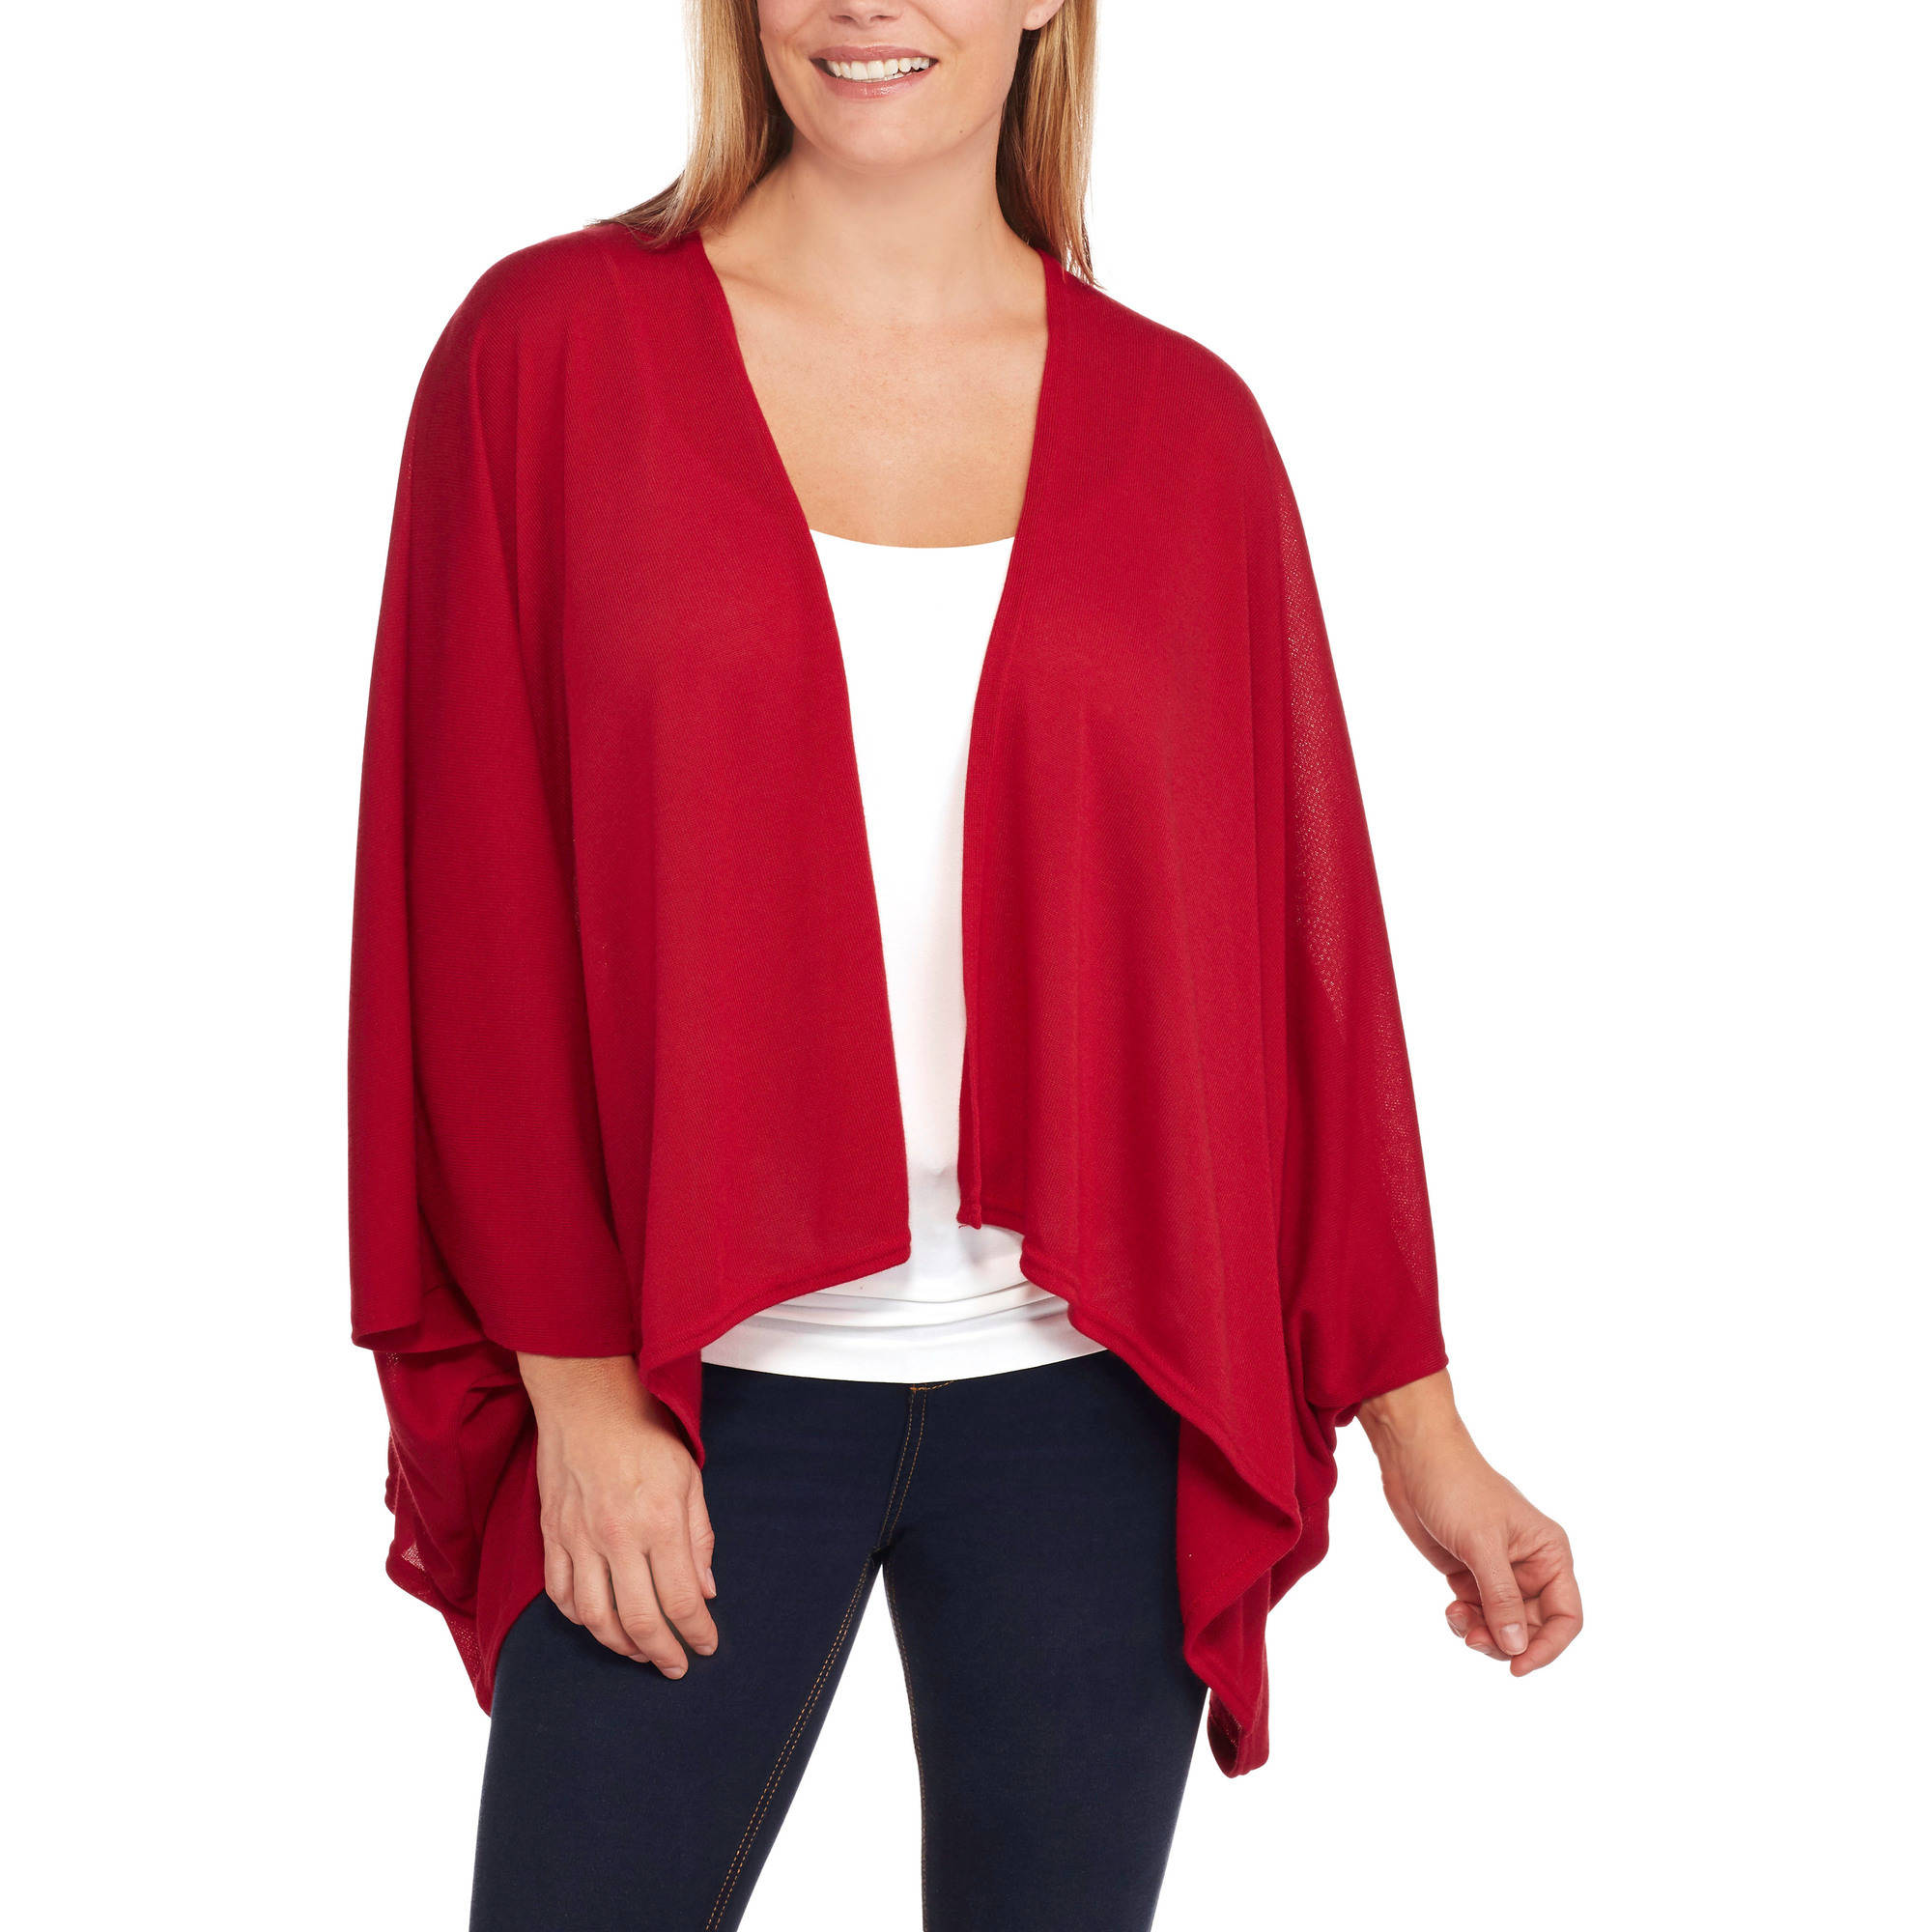 Light Weight Solid Knit Topper